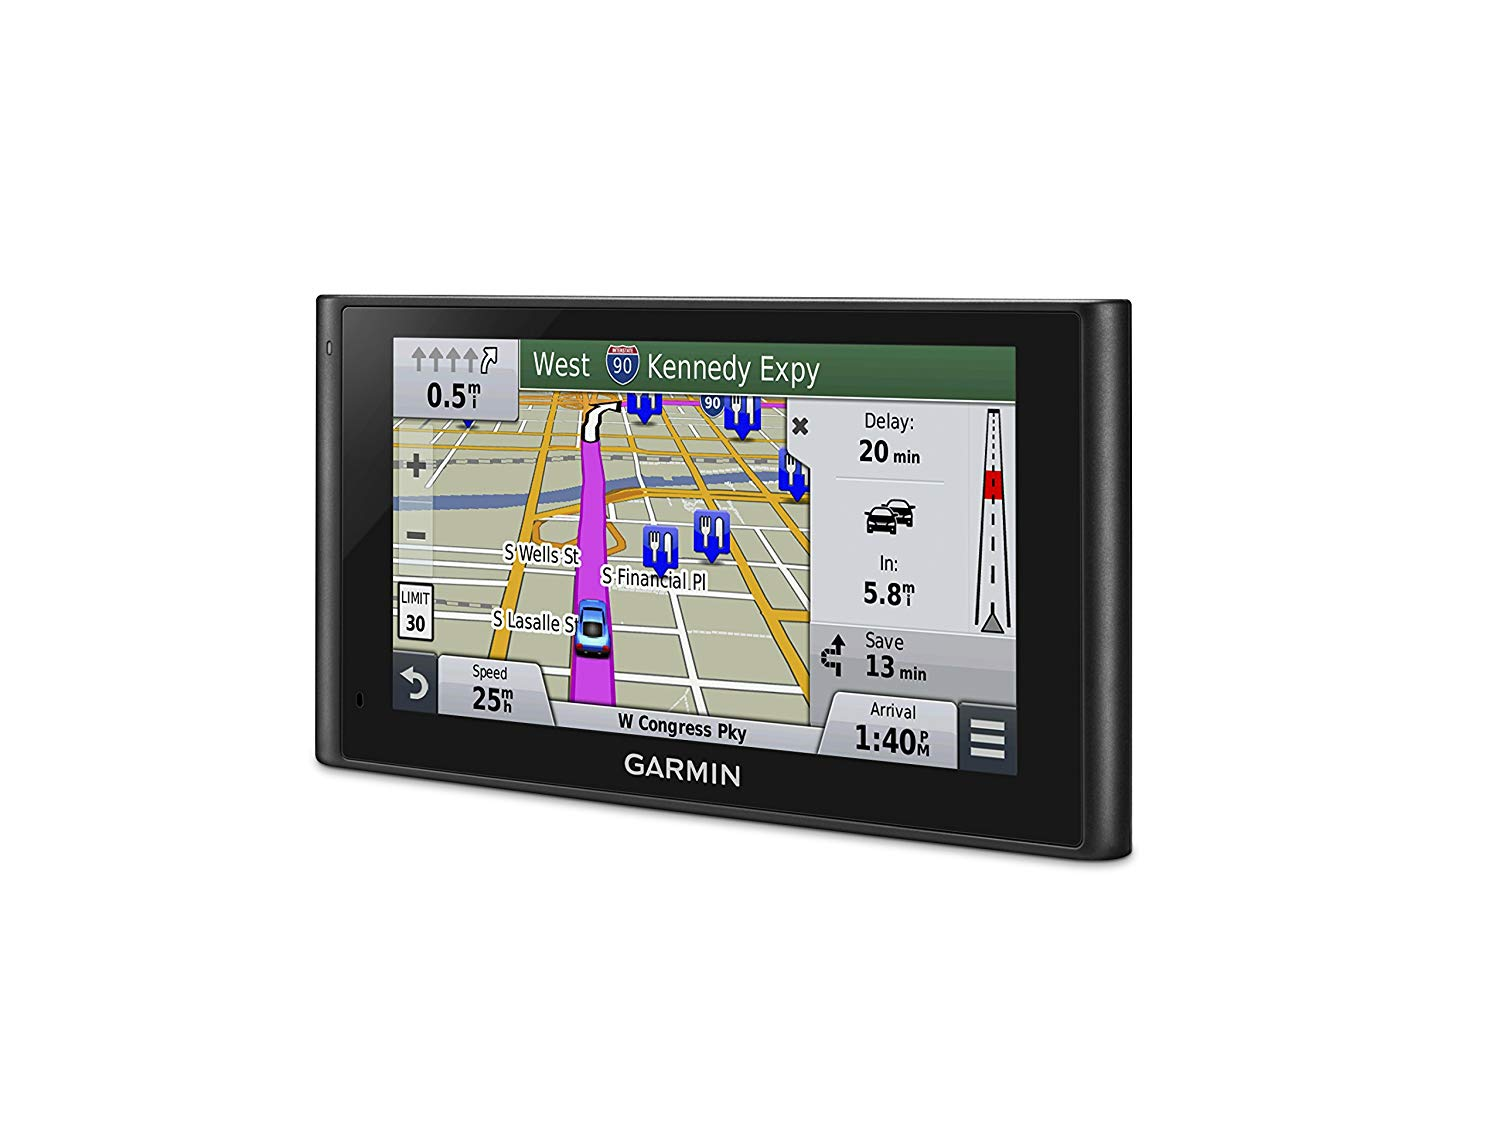 Garmin nav screen with GPS map